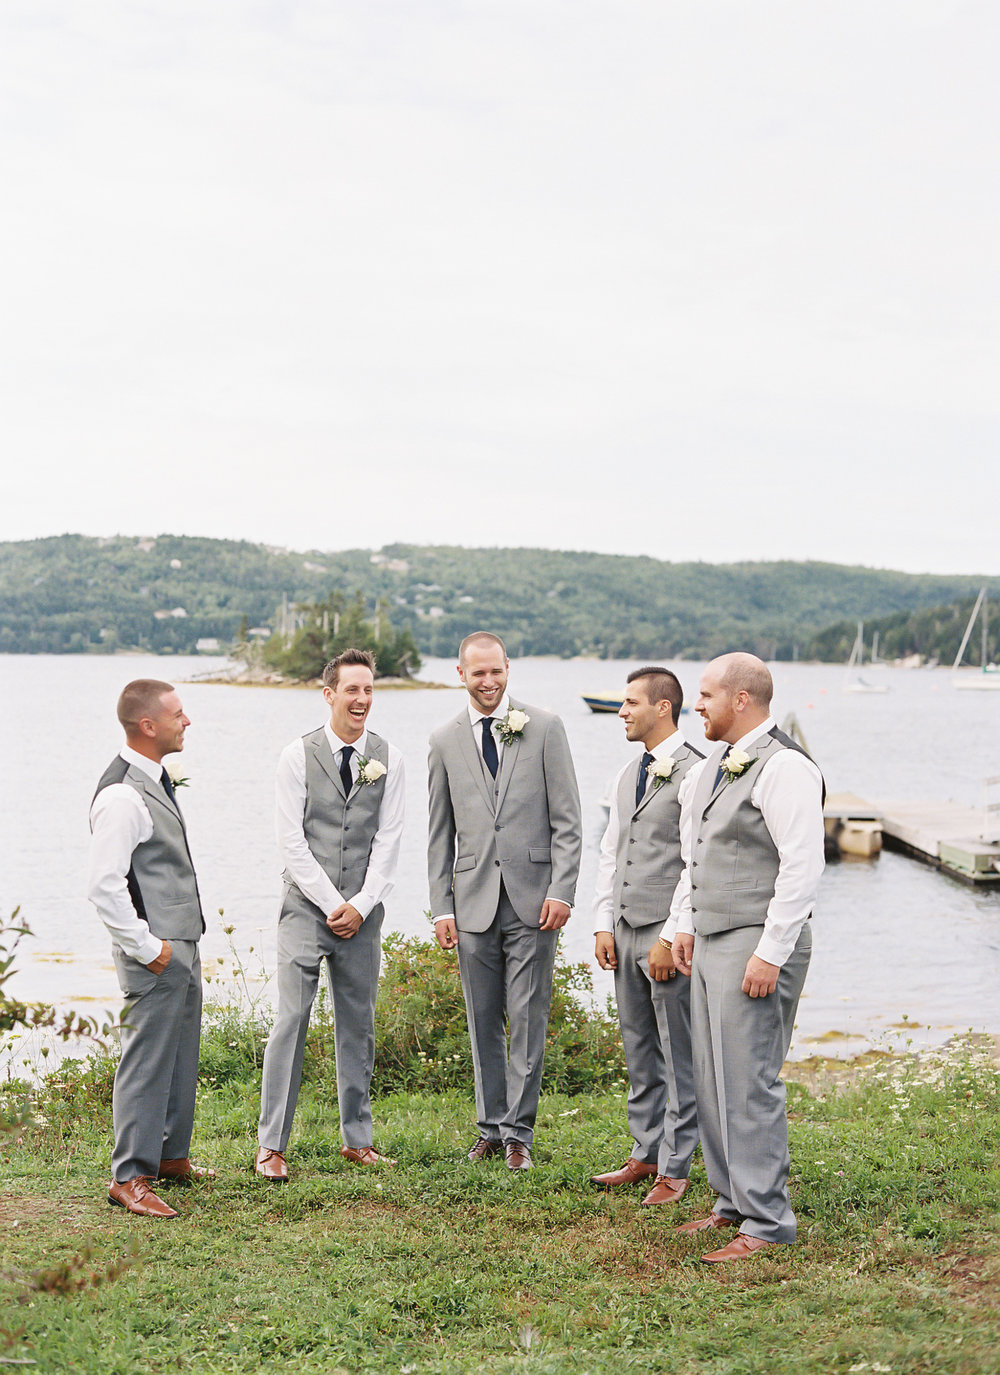 Jacqueline Anne Photography, Halifax Wedding Photographer, Nova Scotia Wedding Photographer, Wedding Photographer based in Halifax, Wedding Photographers in Nova Scotia